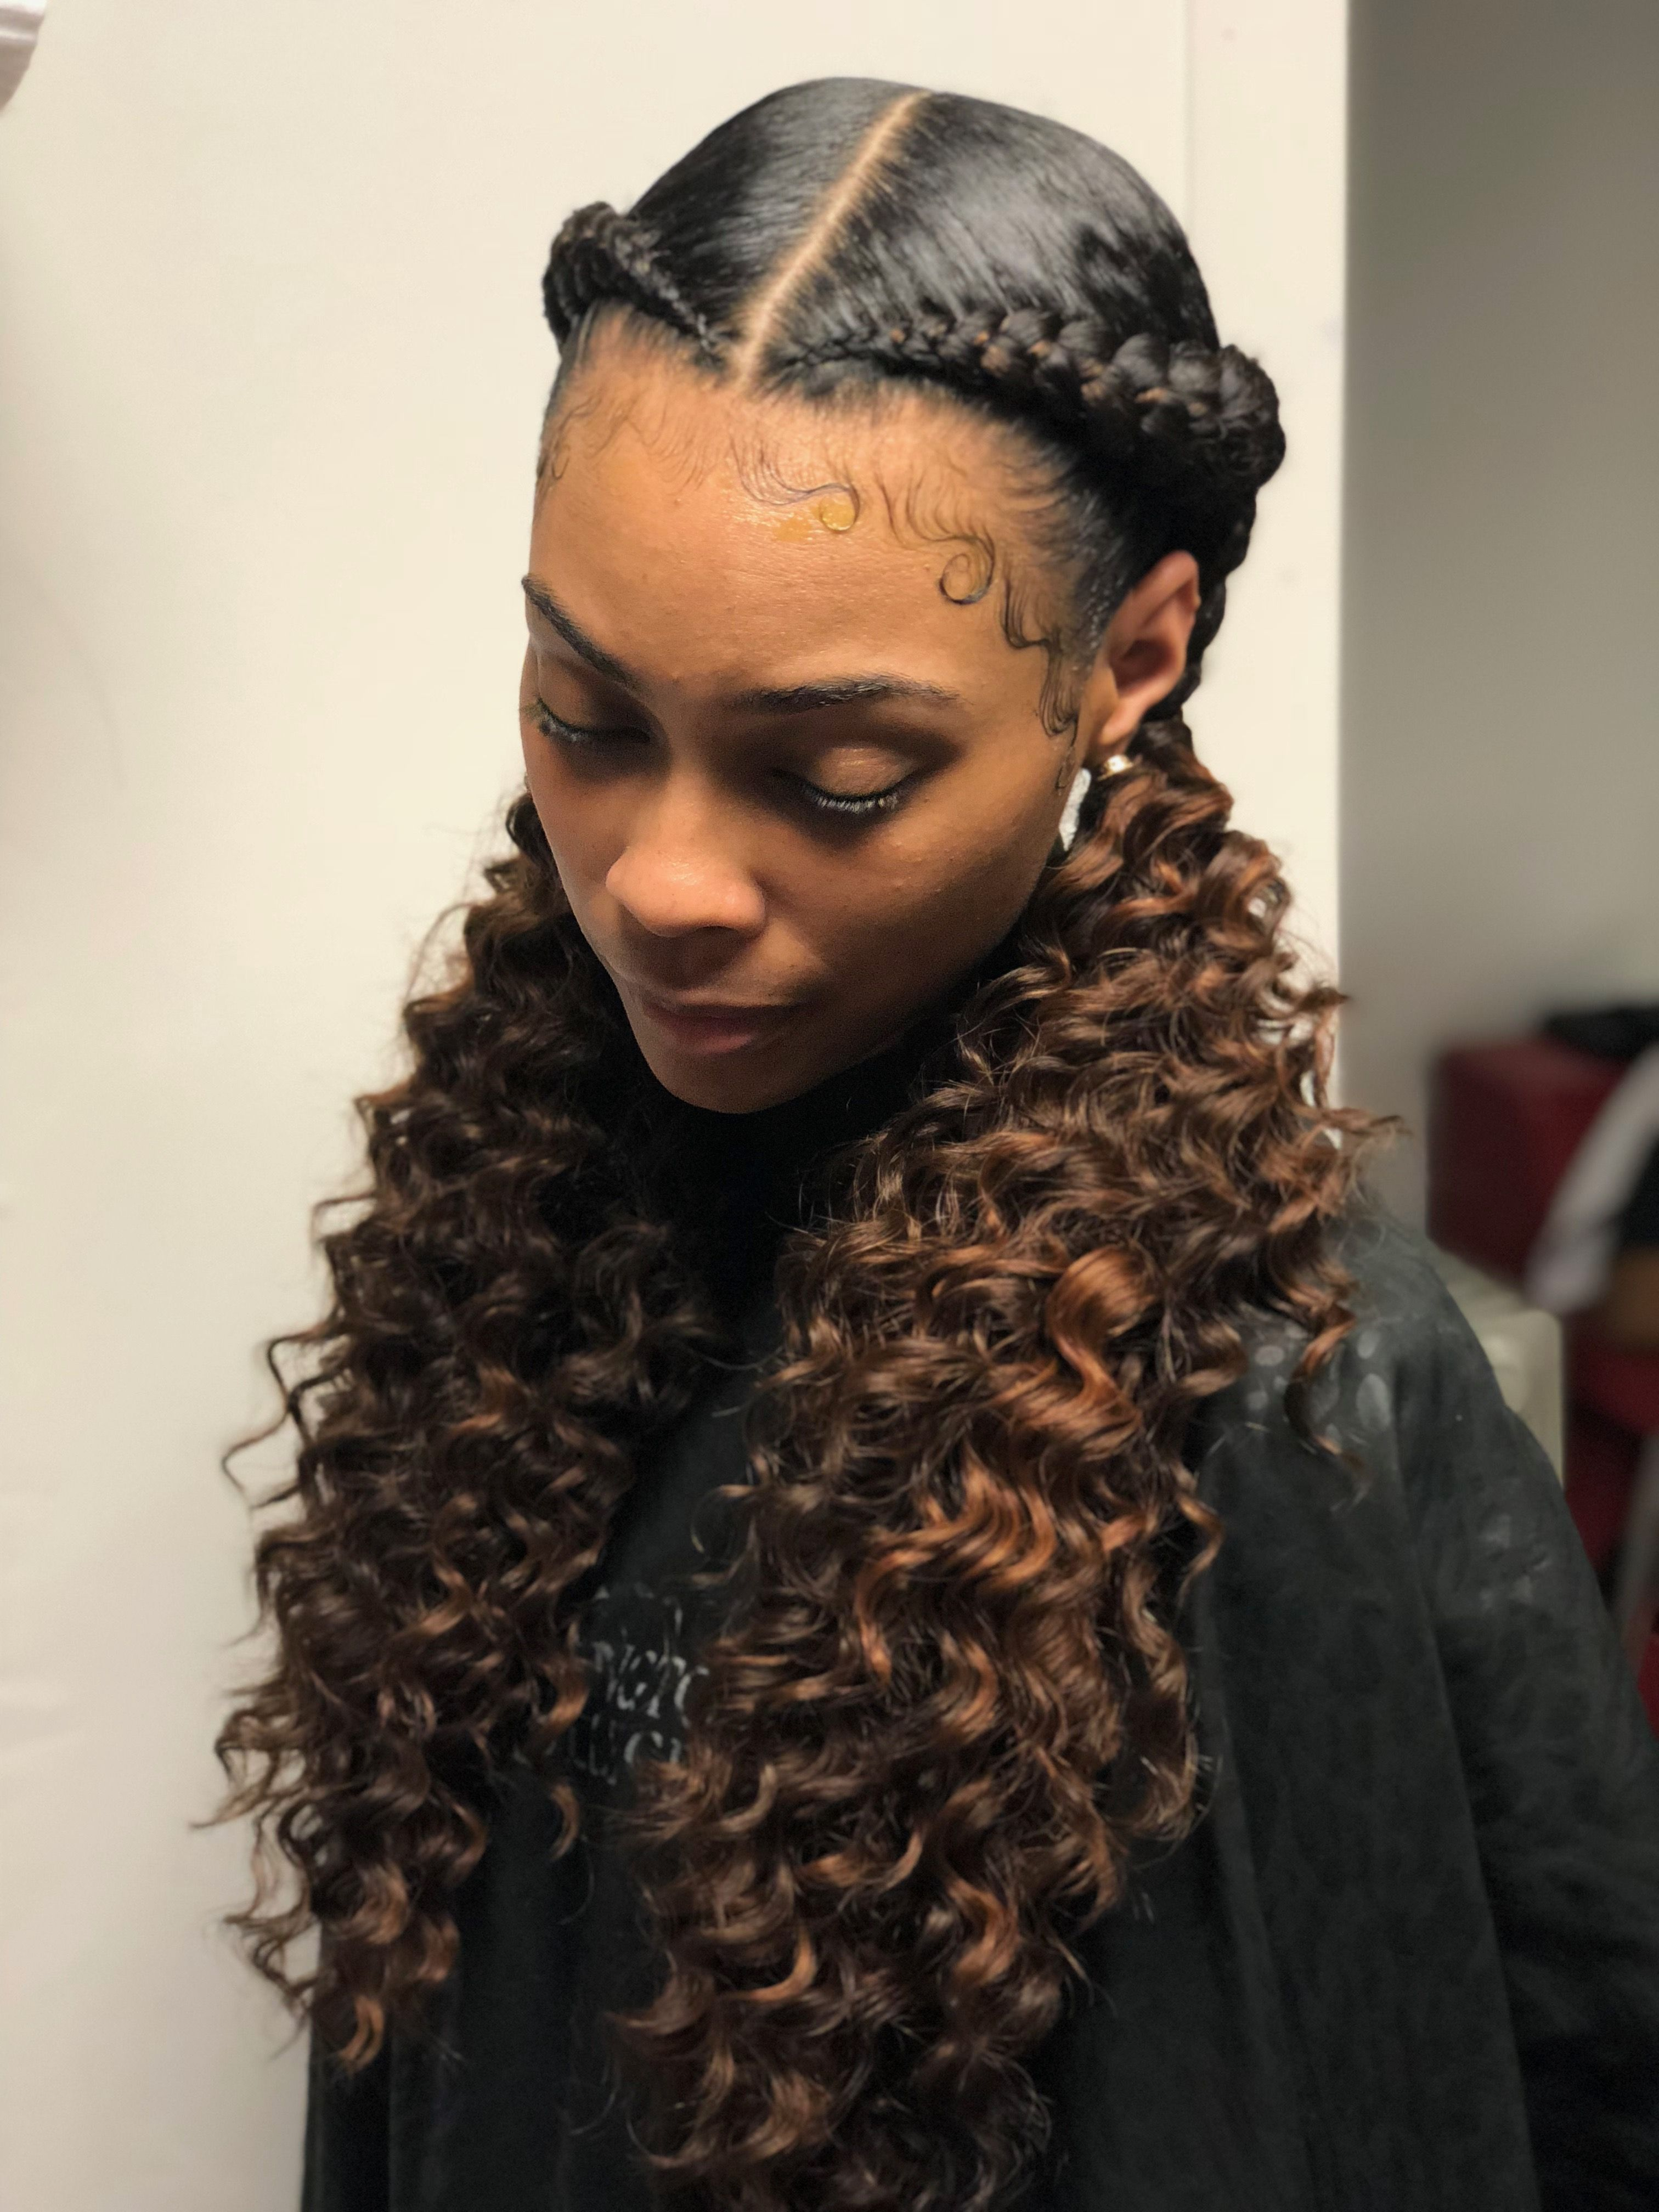 Curly Hair Volume Products Jamaican Curly Hairstyles Curly Hairstyles Everyday Curly Hairstyles In 2020 Hair Styles Natural Hair Styles Braided Ponytail Hairstyles